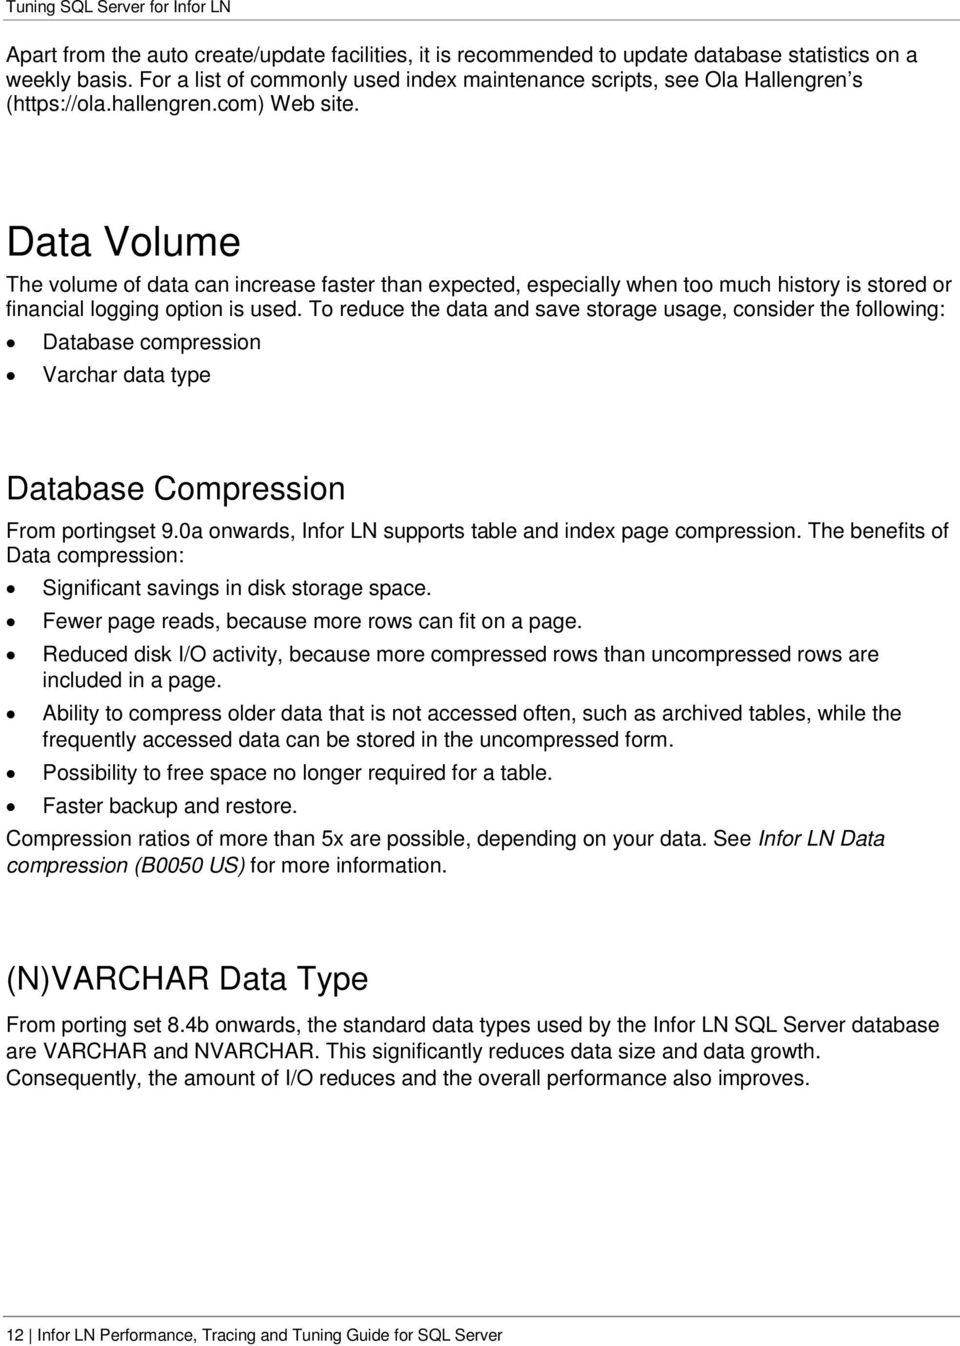 Data Volume The volume of data can increase faster than expected, especially when too much history is stored or financial logging option is used.